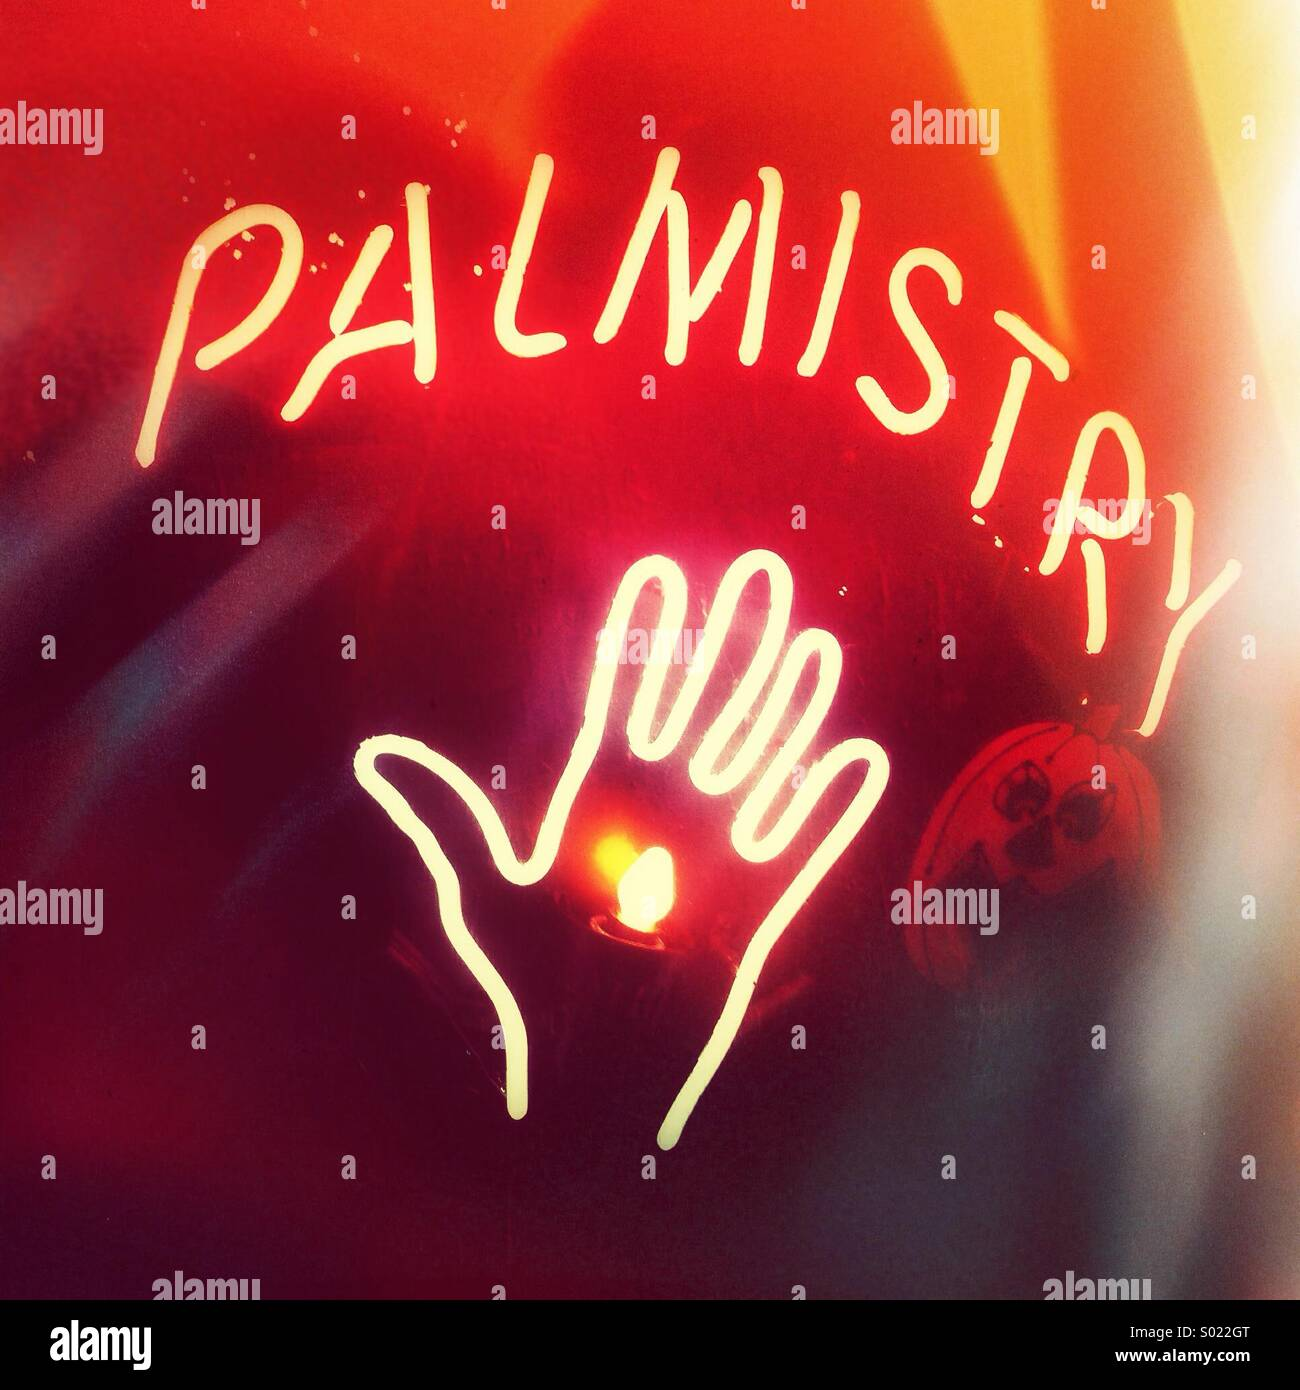 Palm reading sign stock photos palm reading sign stock images alamy neon fortune teller sign in window at night during halloween season north america m4hsunfo